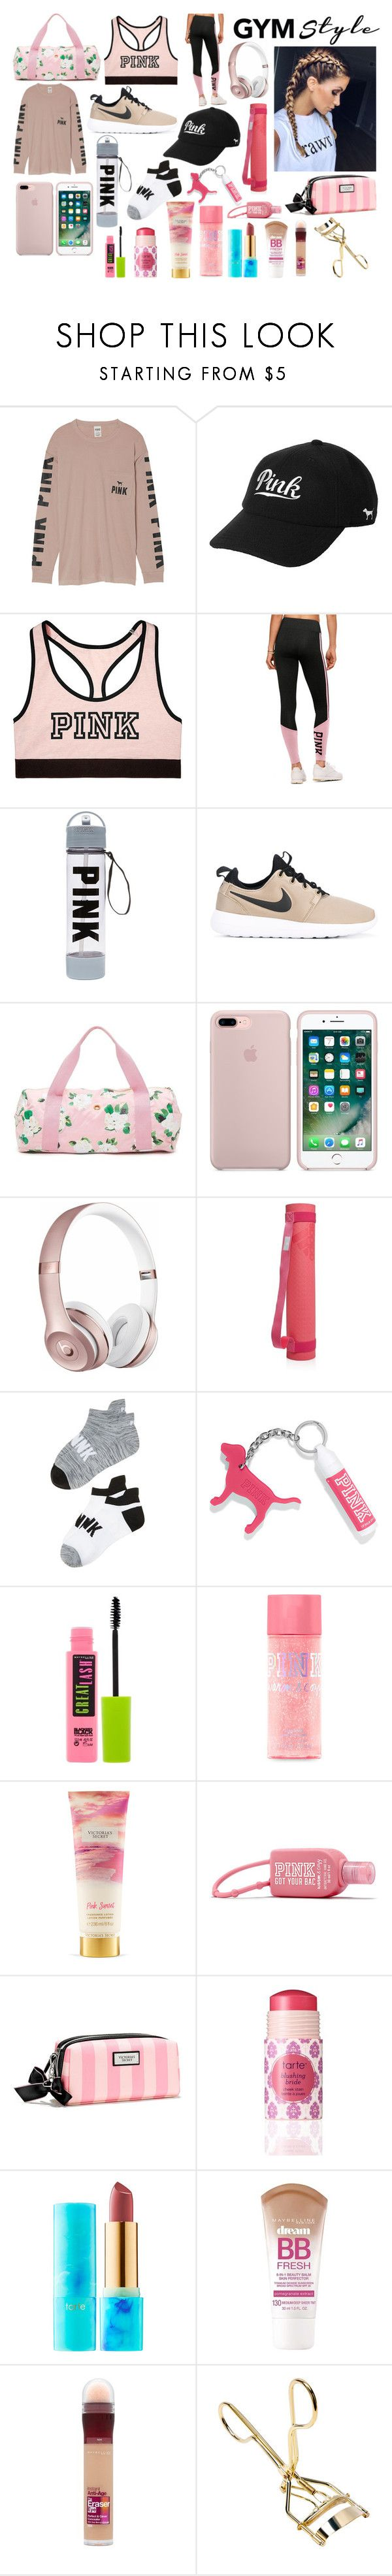 """""""gym style"""" by valen200329 on Polyvore featuring moda, Victoria's Secret, NIKE, ban.do, Beats by Dr. Dre, adidas, Maybelline y tarte"""